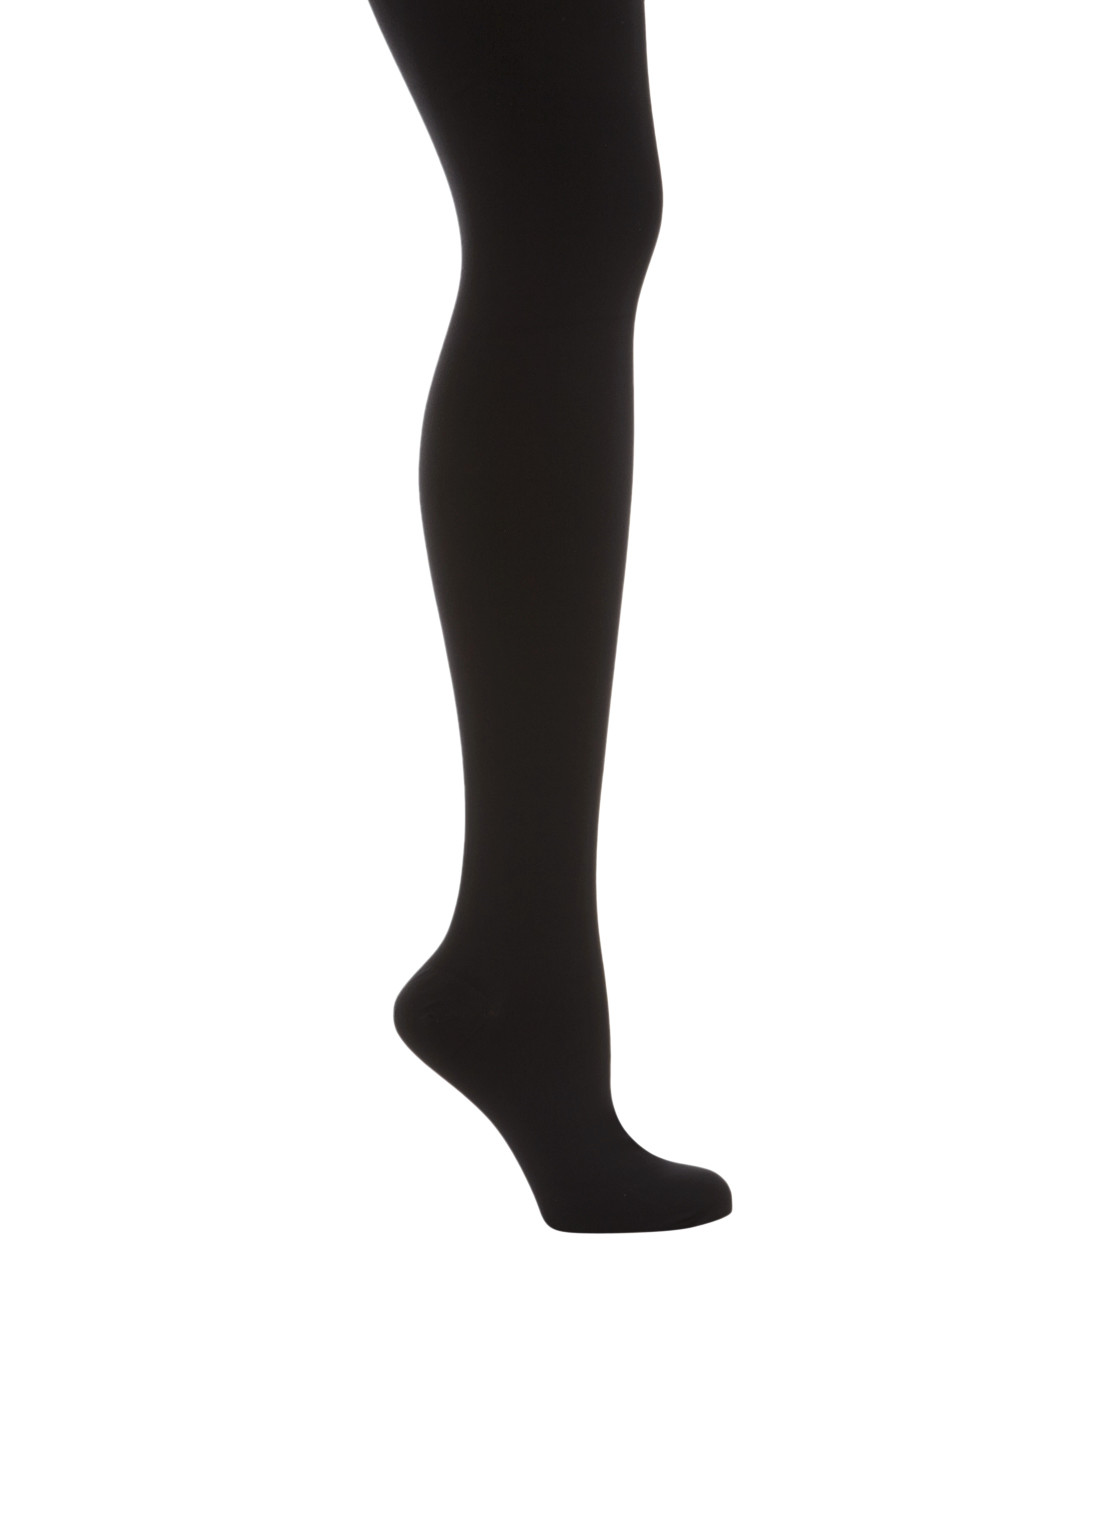 Wolford Individual Leg Support panty in 100 denier